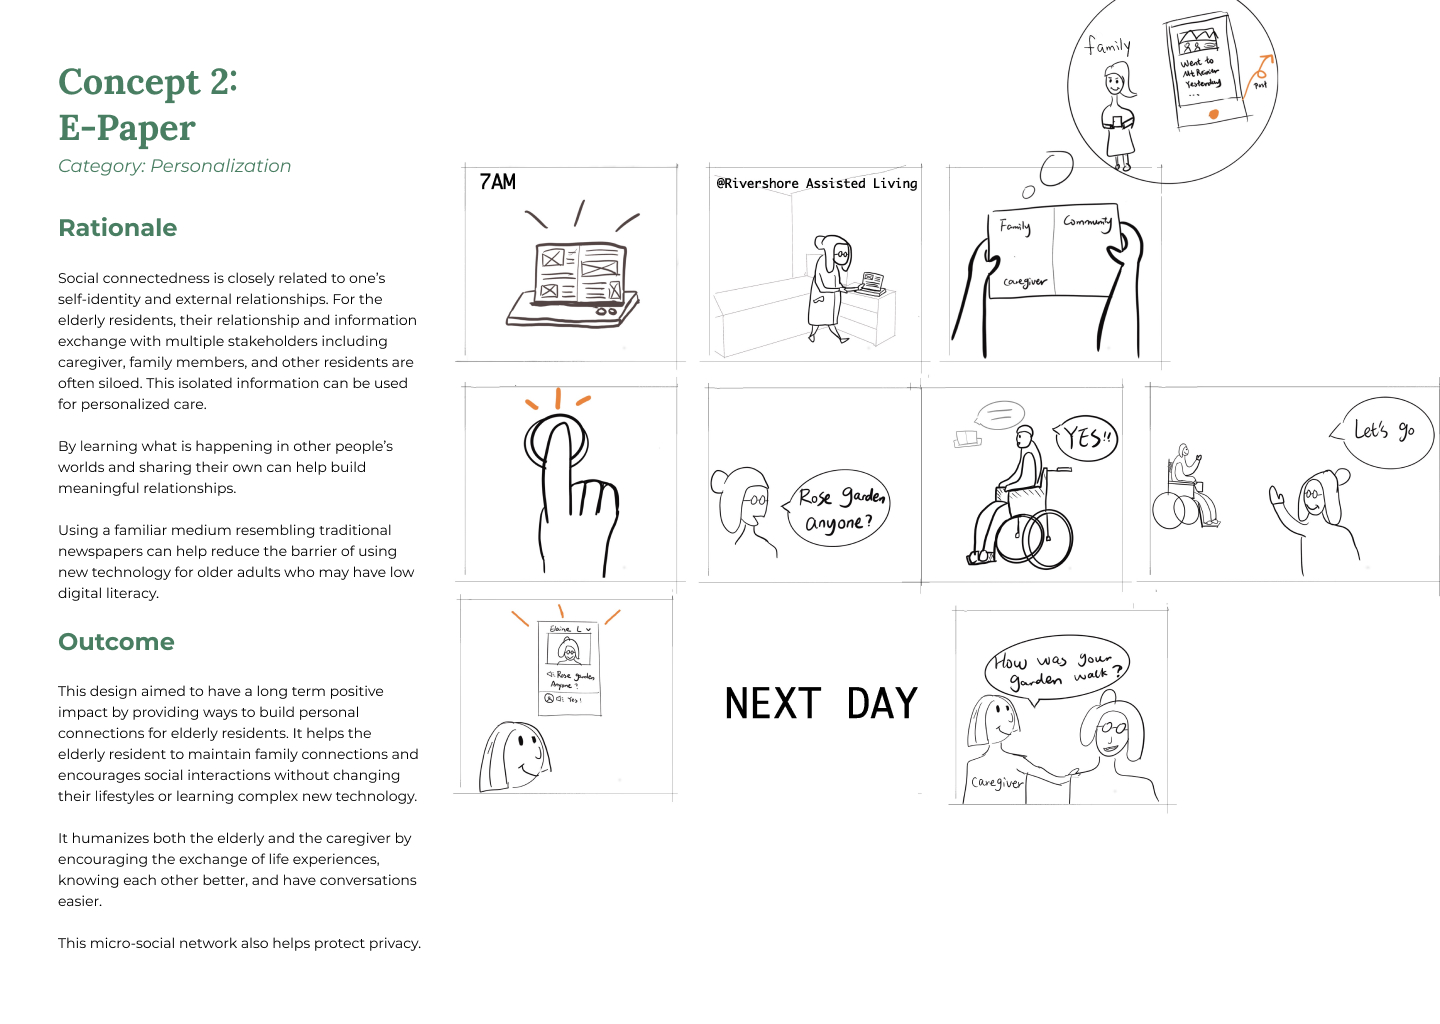 Ideation concept two storyboard with rationale and expected outcome